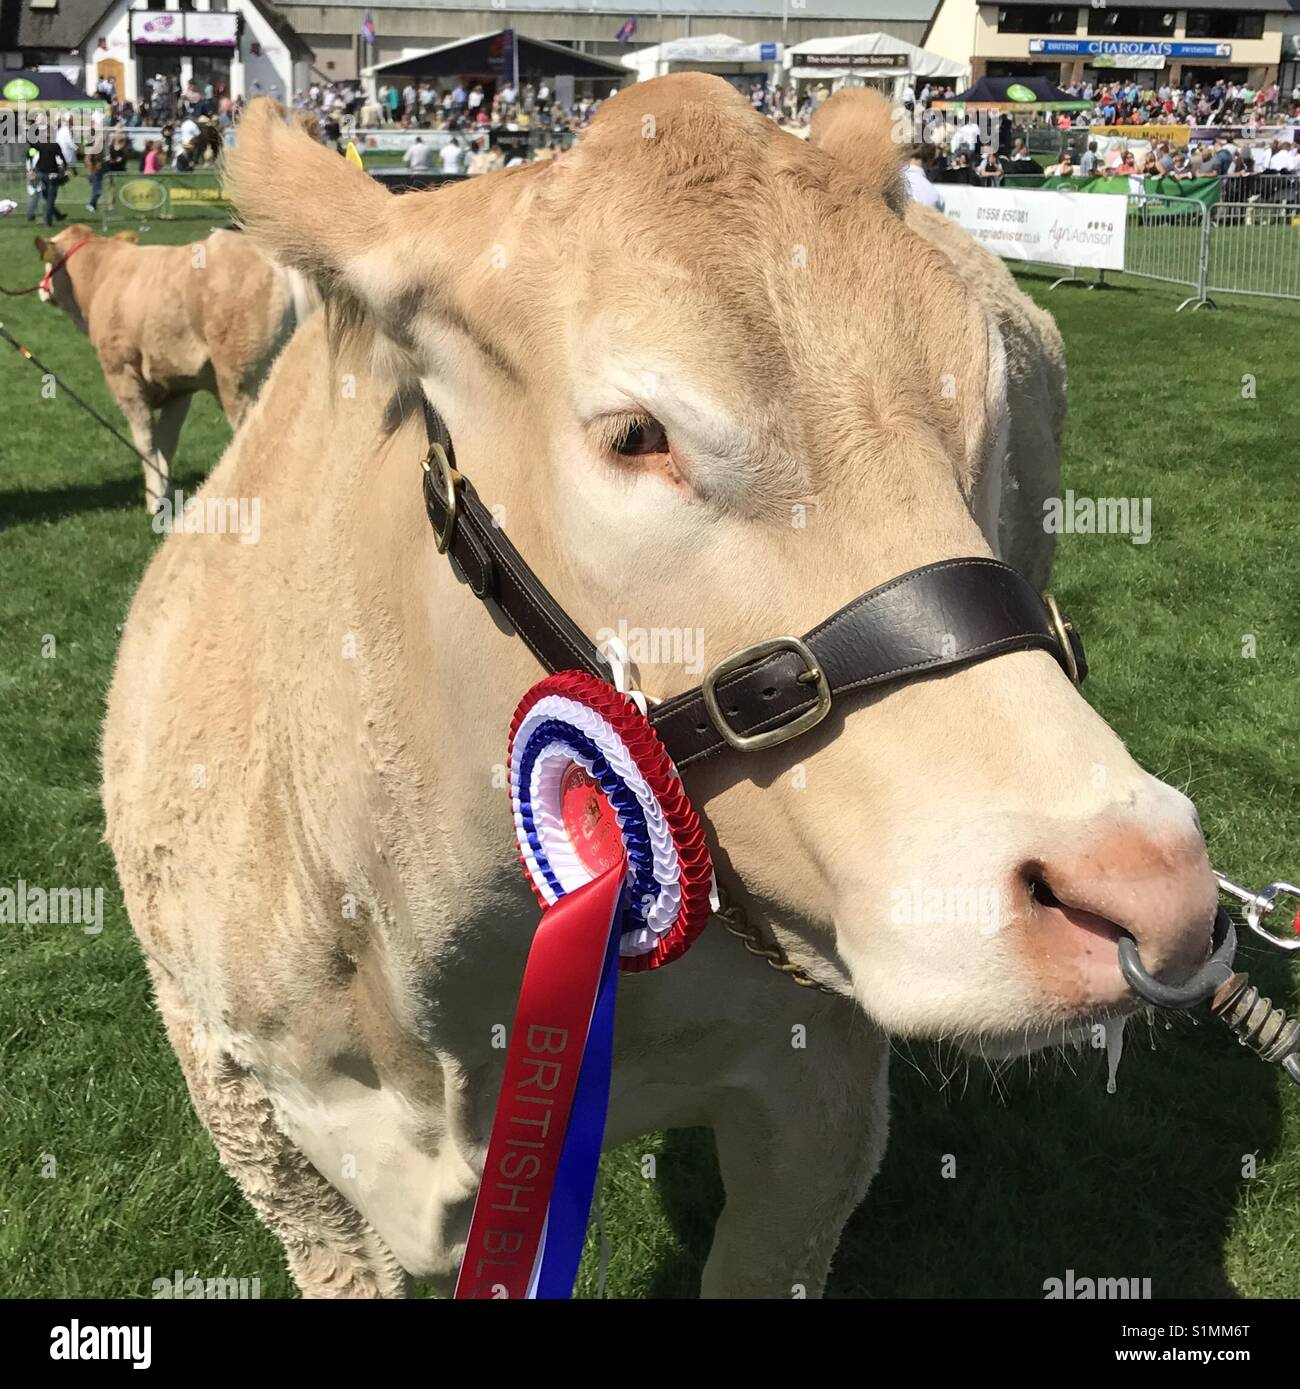 Bull -British Blonde- with rosette at the Royal Welsh Show 2017 - Stock Image